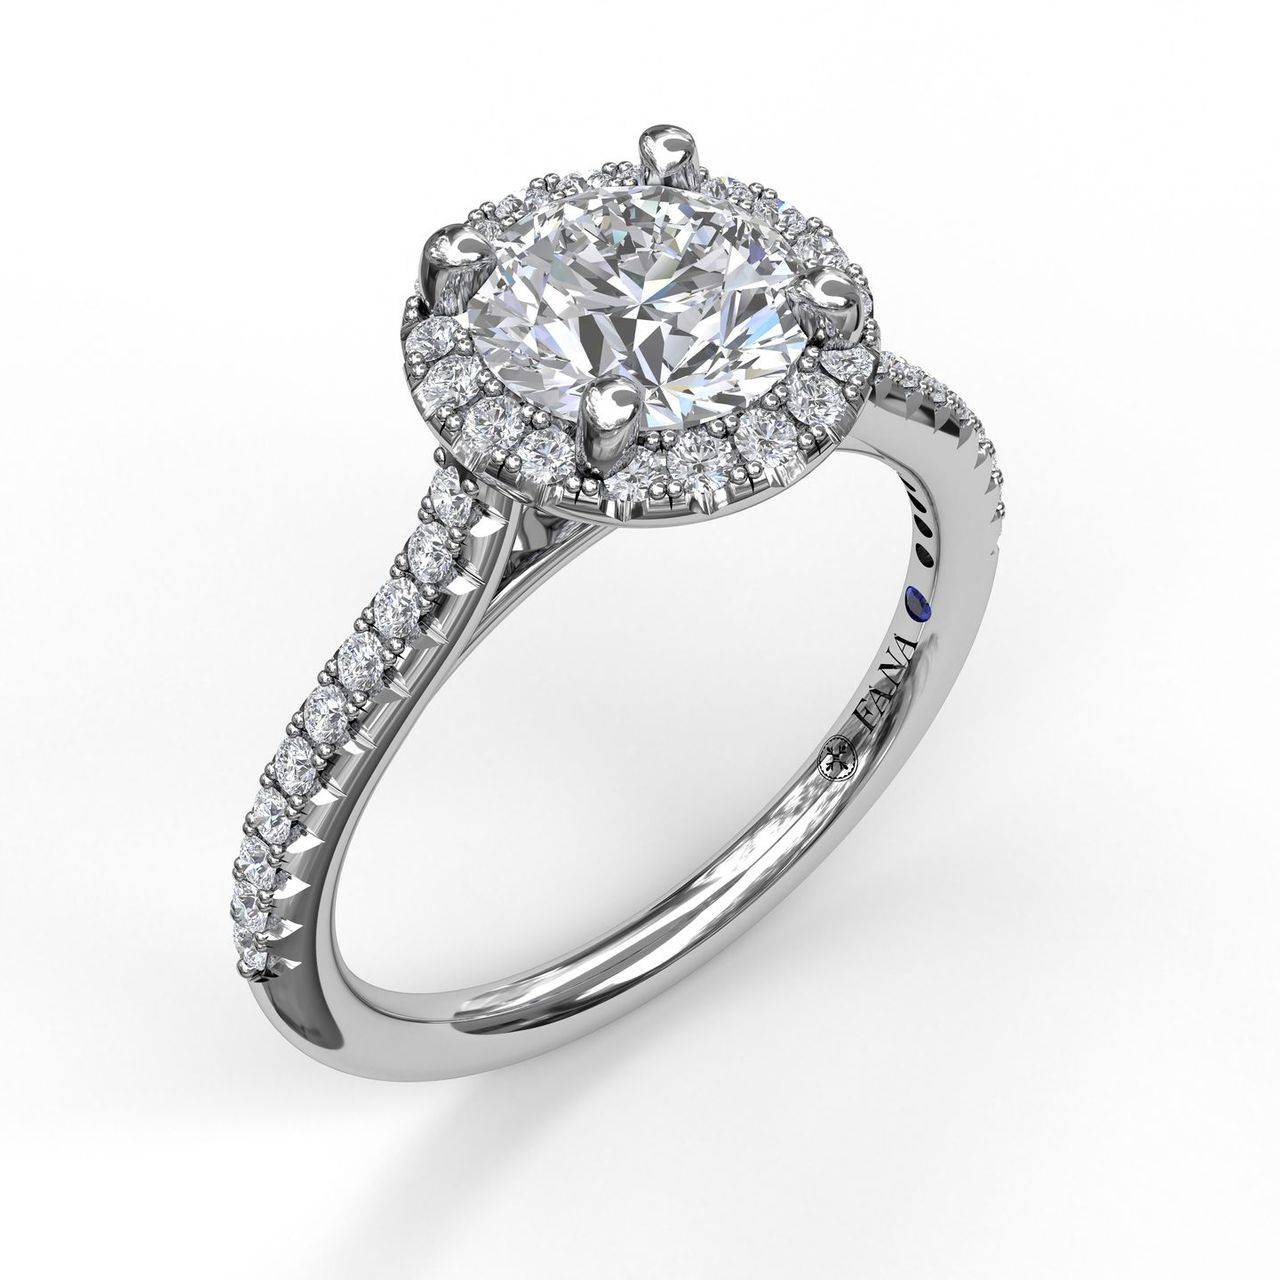 White 14 Karat Solitaire Mounting Size 6.5 With 40=0.27Tw Round G/H Vs2-Si1 Diamonds<br>Collection: Fana Jewelry